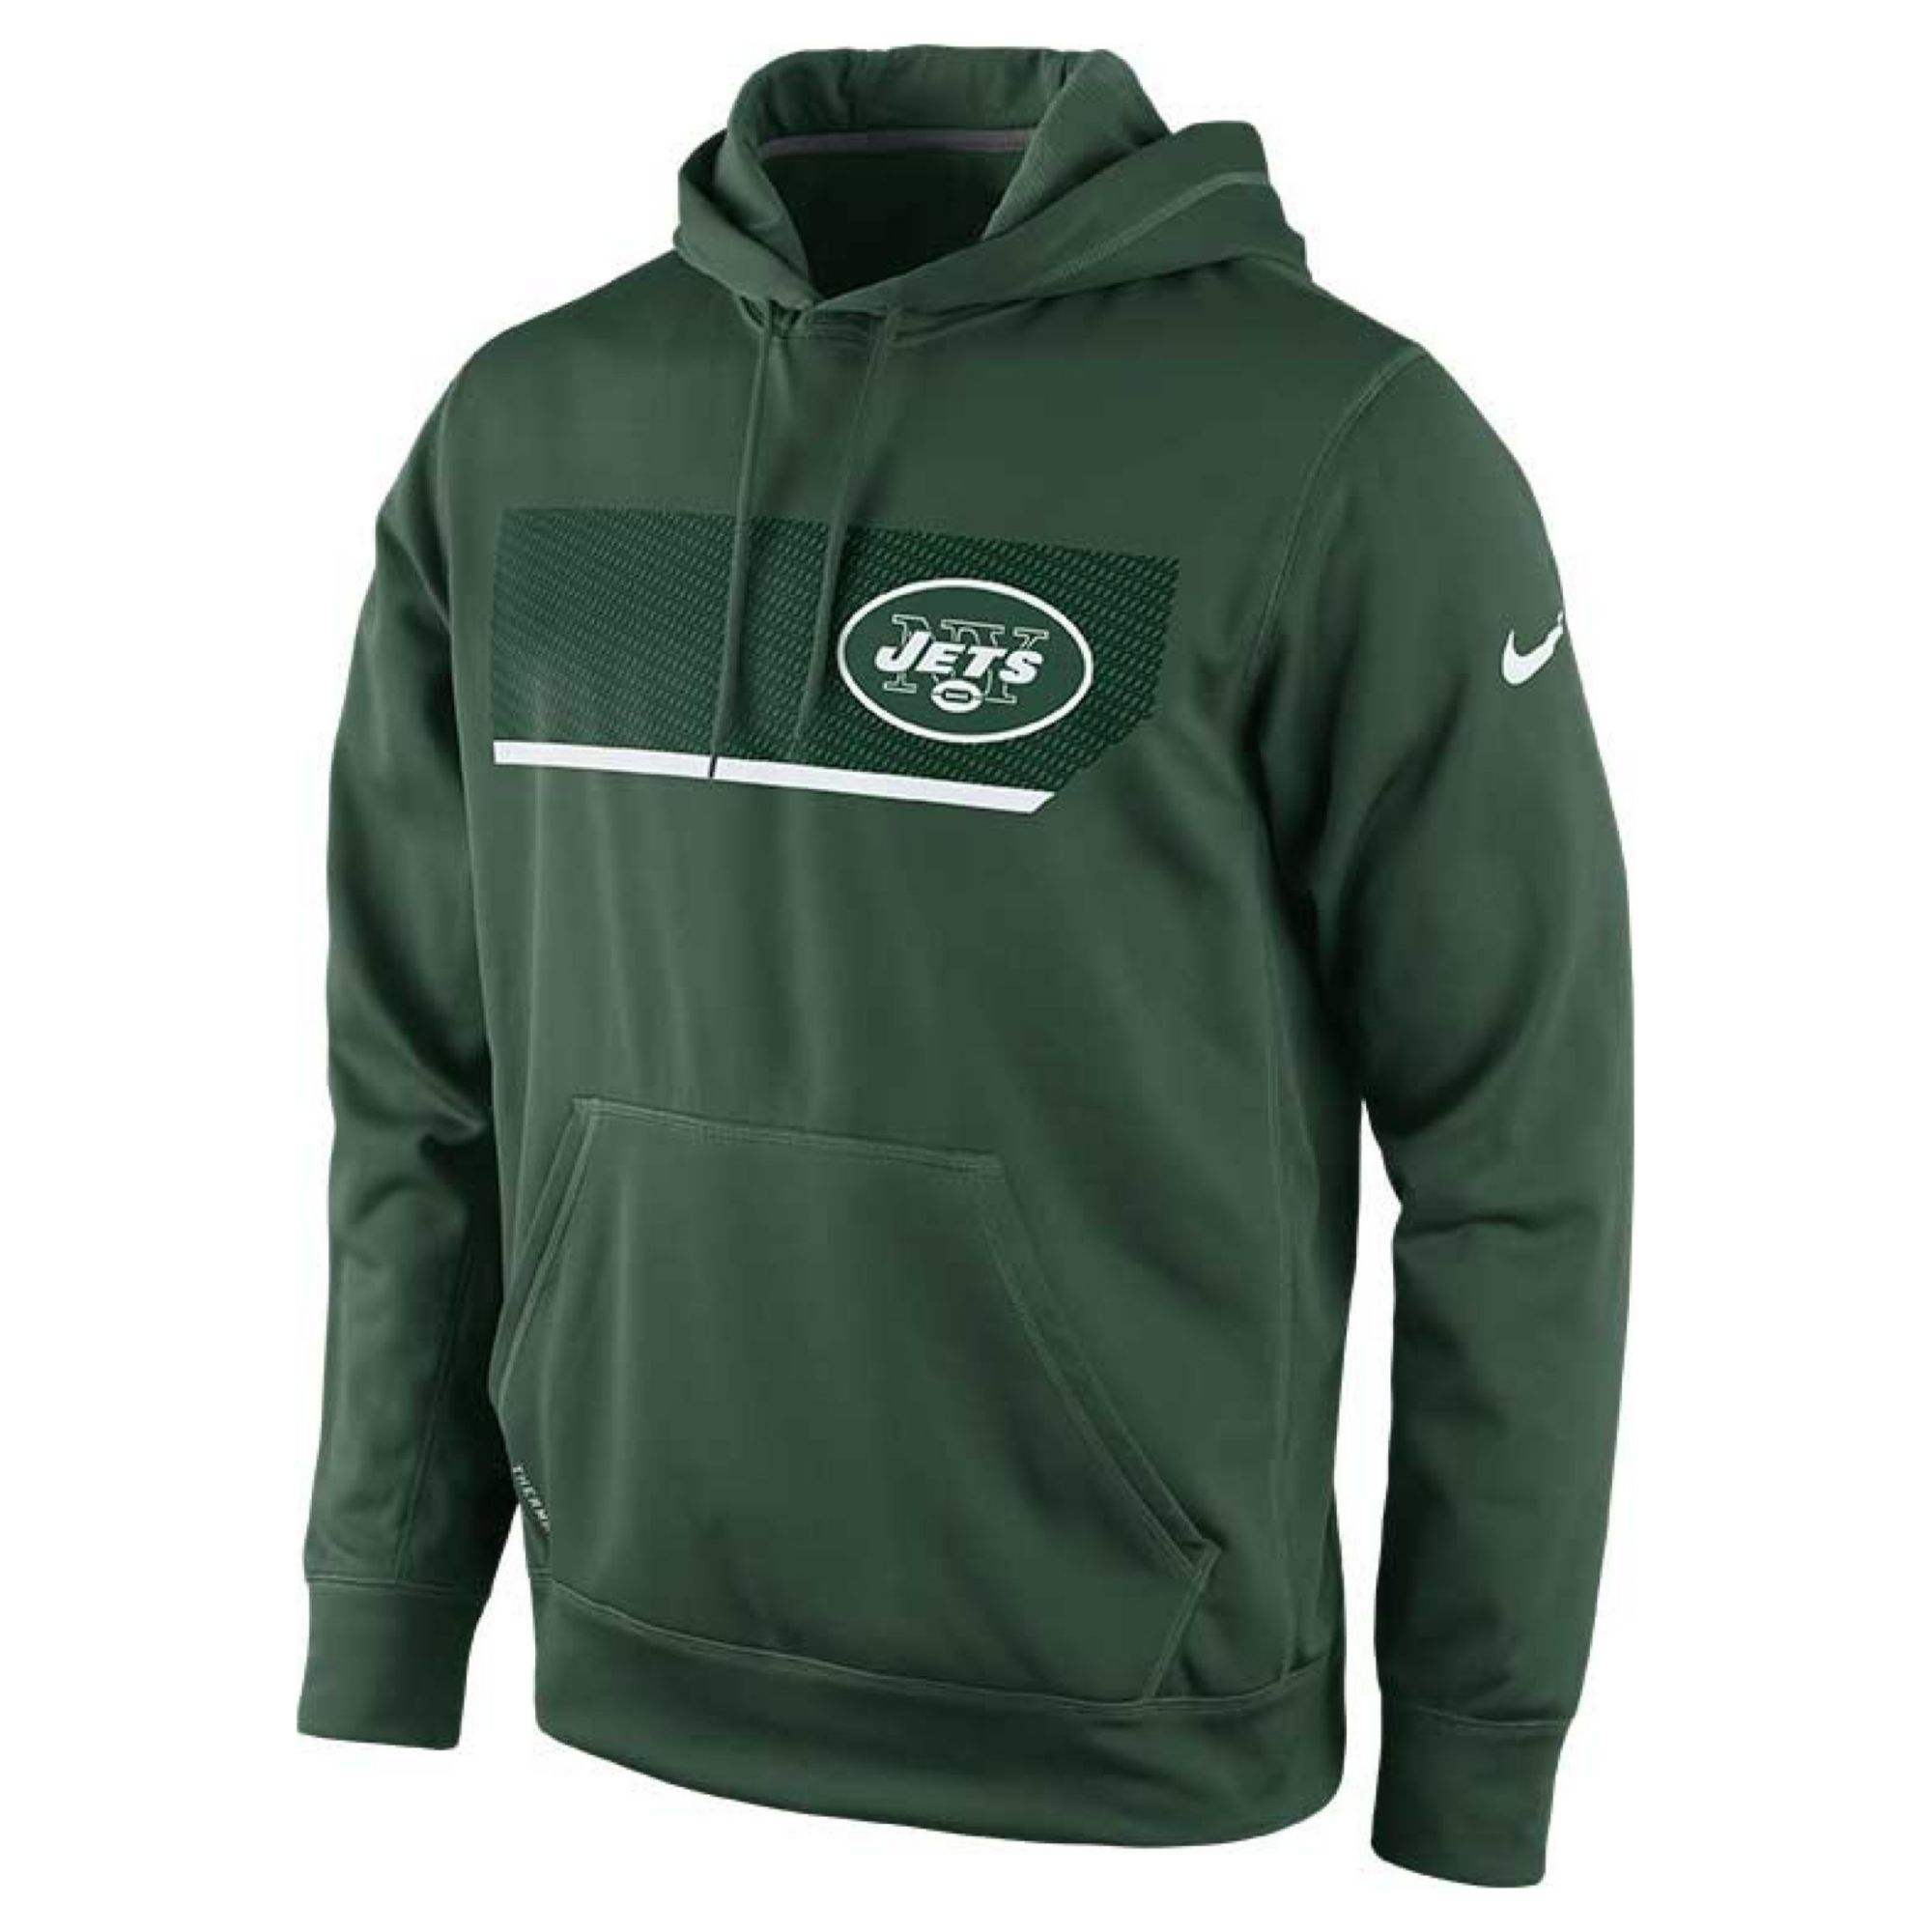 New York Performance: Nike Mens New York Jets Performance Hoodie In Green For